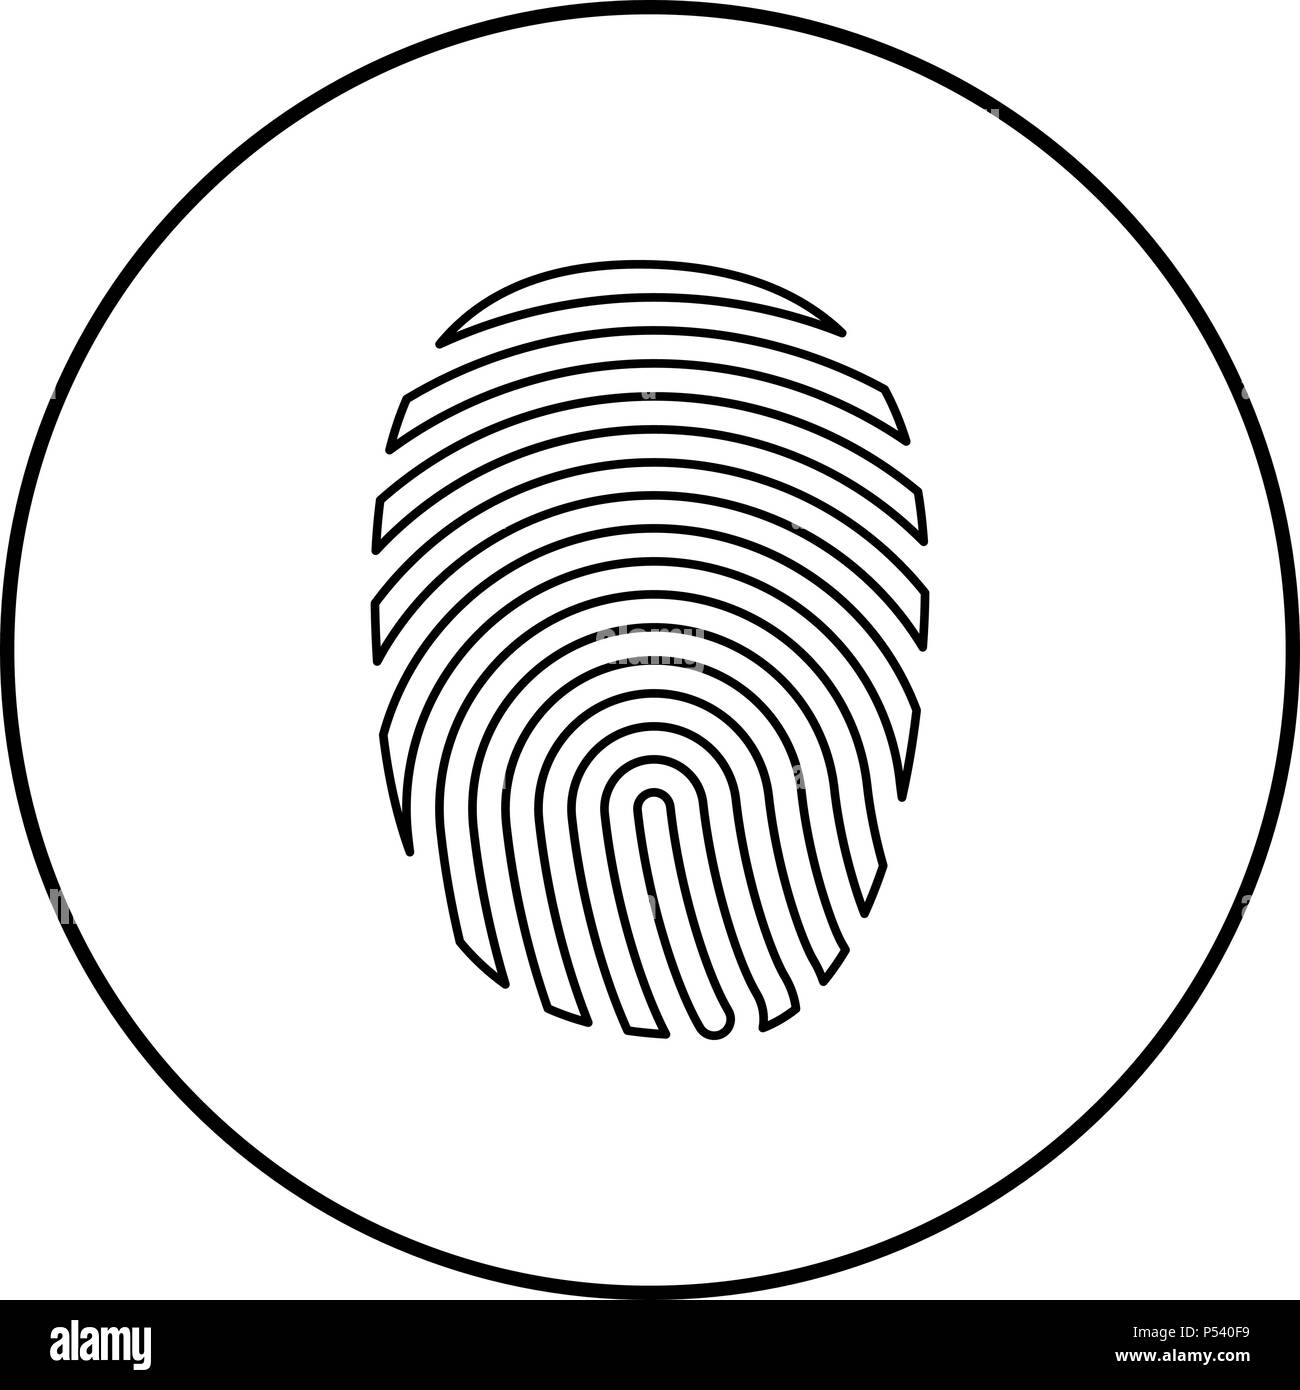 Fingerprint icon black color in circle round outline - Stock Image